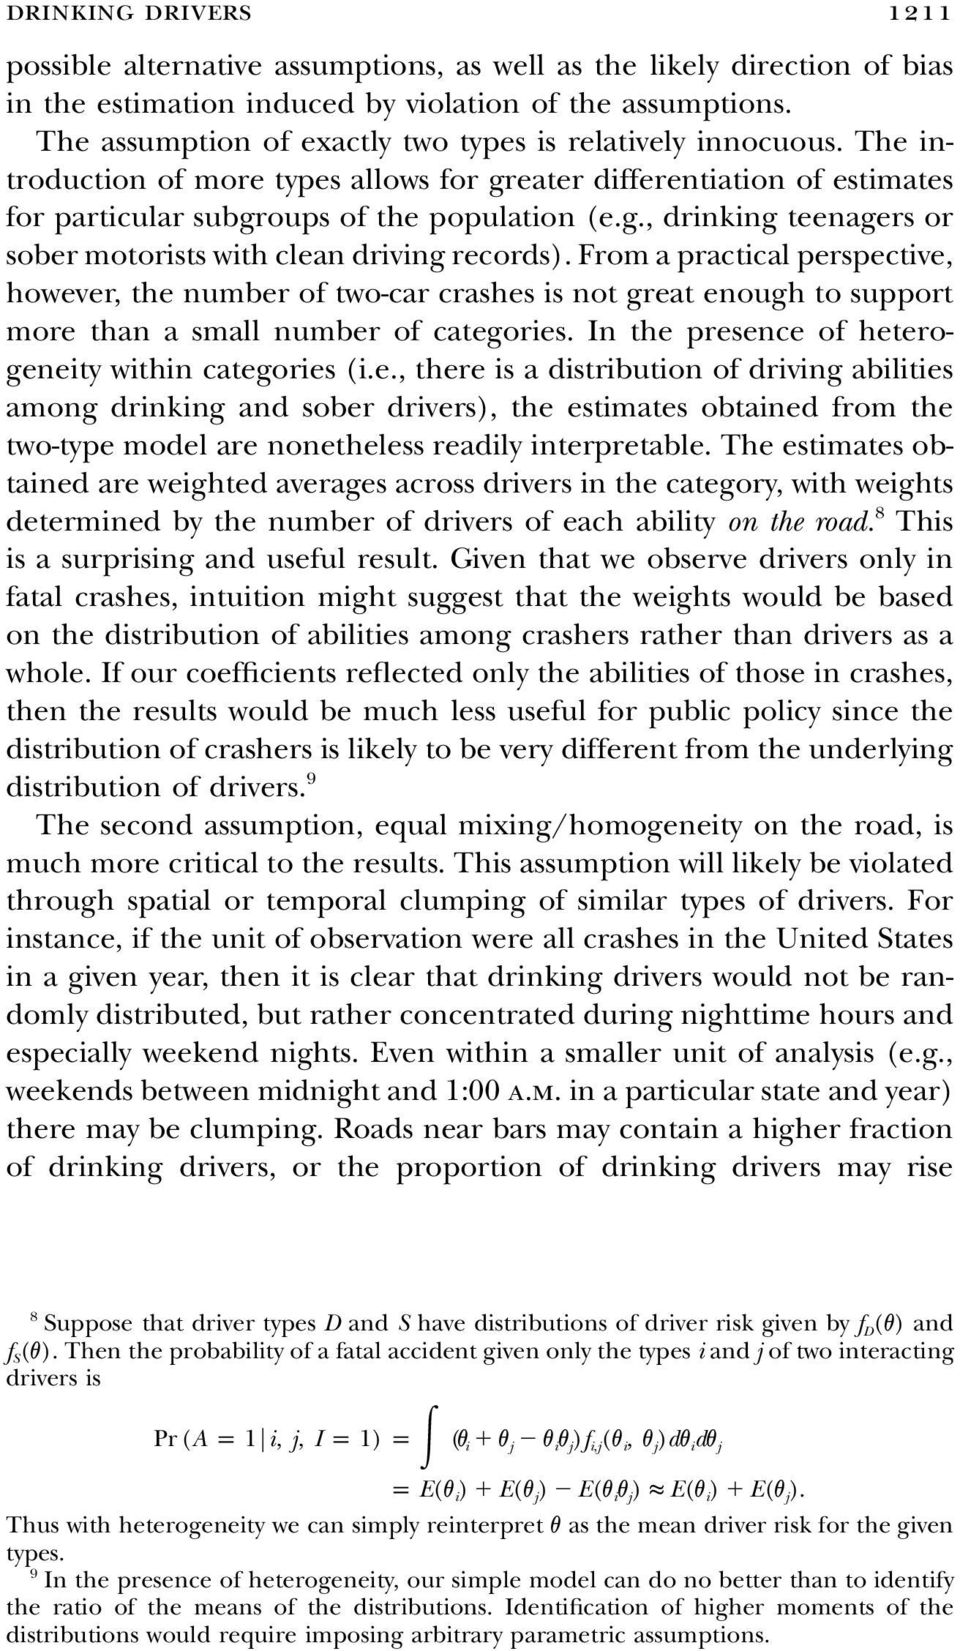 From a practical perspective, however, the number of two-car crashes is not great enough to support more than a small number of categories. In the presence of heterogeneity within categories (i.e., there is a distribution of driving abilities among drinking and sober drivers), the estimates obtained from the two-type model are nonetheless readily interpretable.